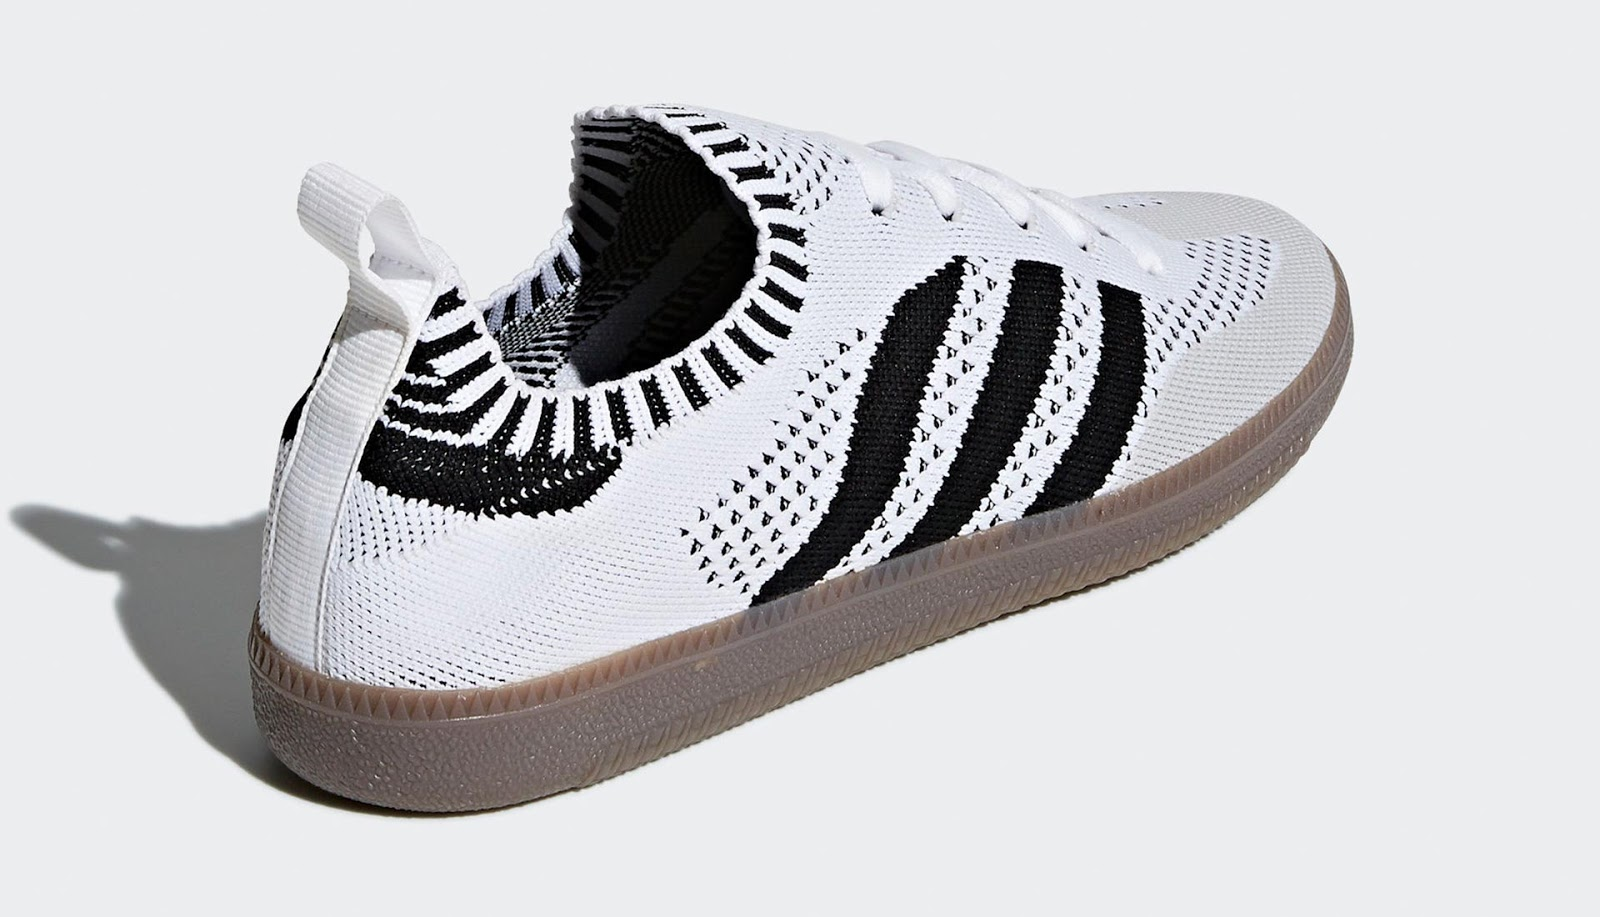 huge selection of db8da 8c0ea ... sweden the new adidas samba sock primeknit football shoe is the first  ever primeknit version of